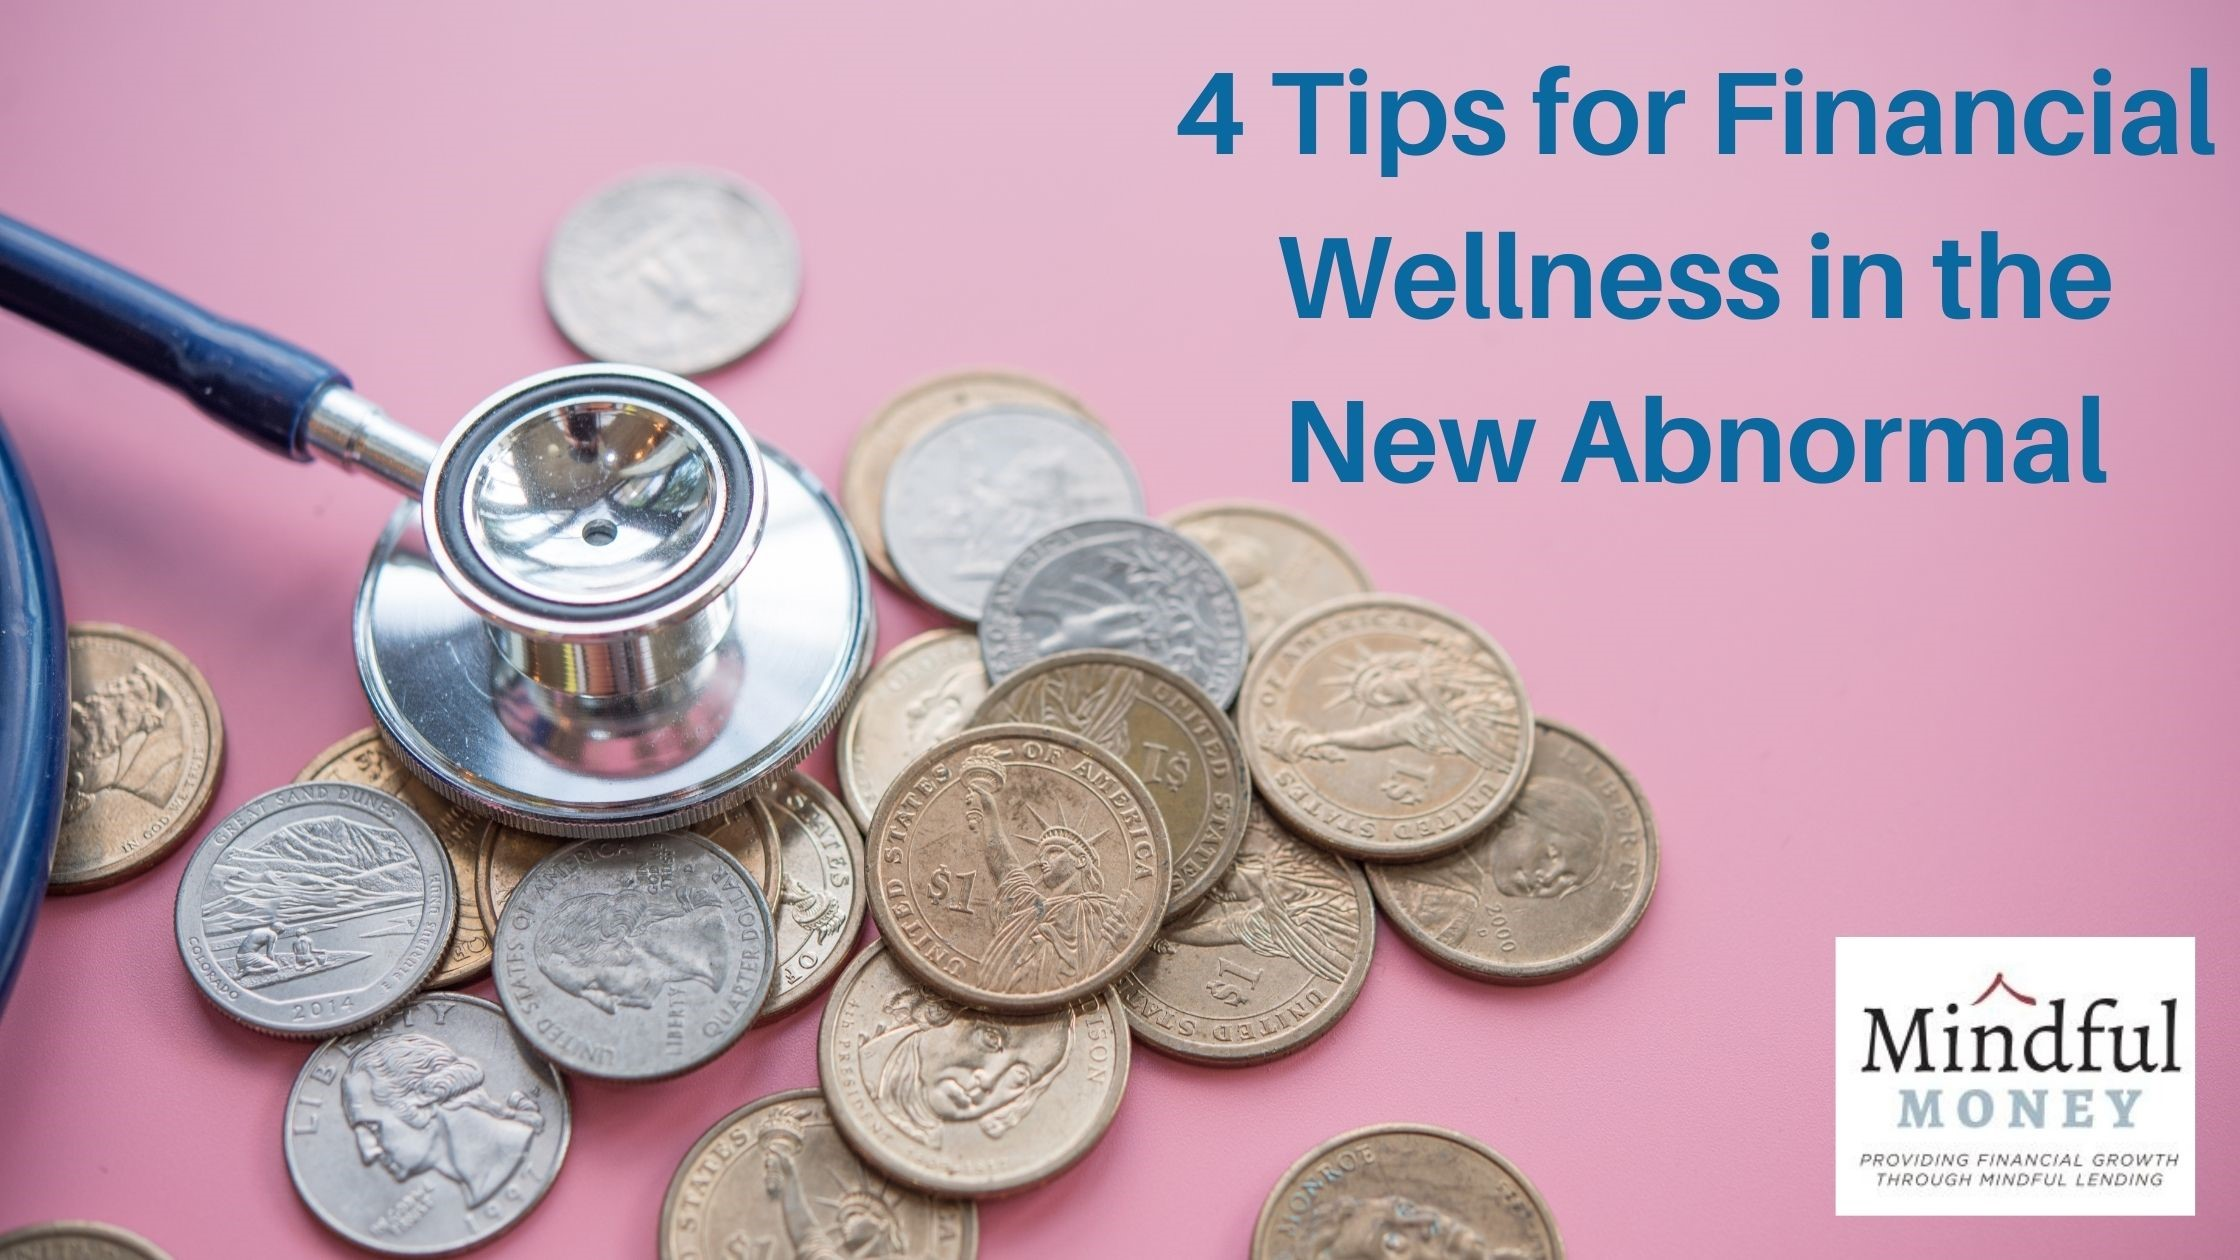 4 Tips for Financial Wellness in the New Abnormal